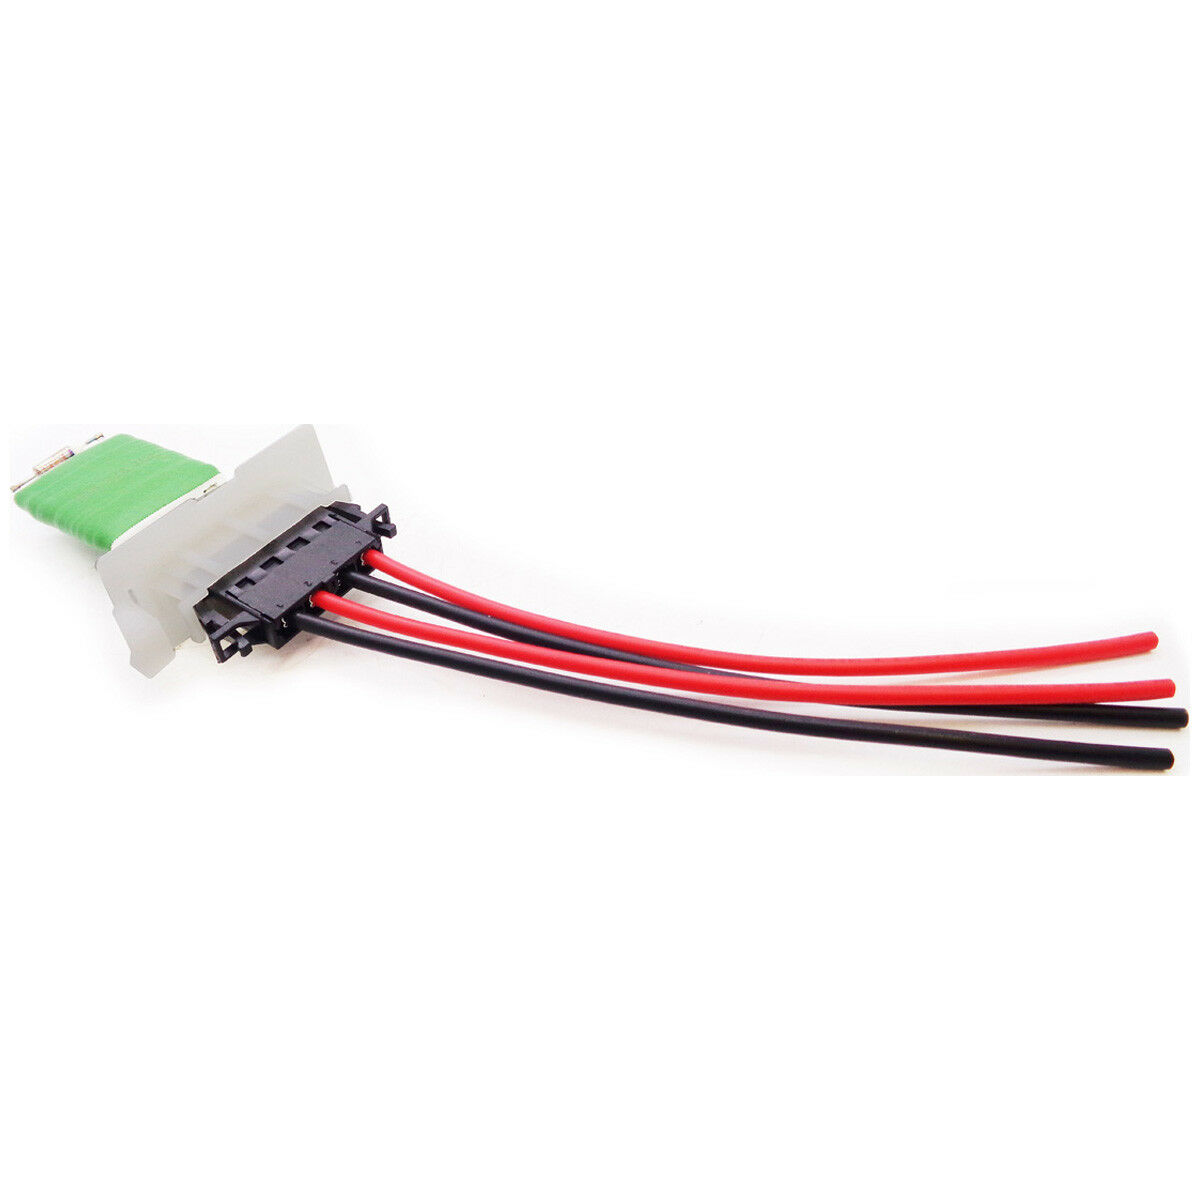 Fits Peugeot Partner 03 08 Heater Resistor Wiring Harness Ashr37 1 Of 1free Shipping